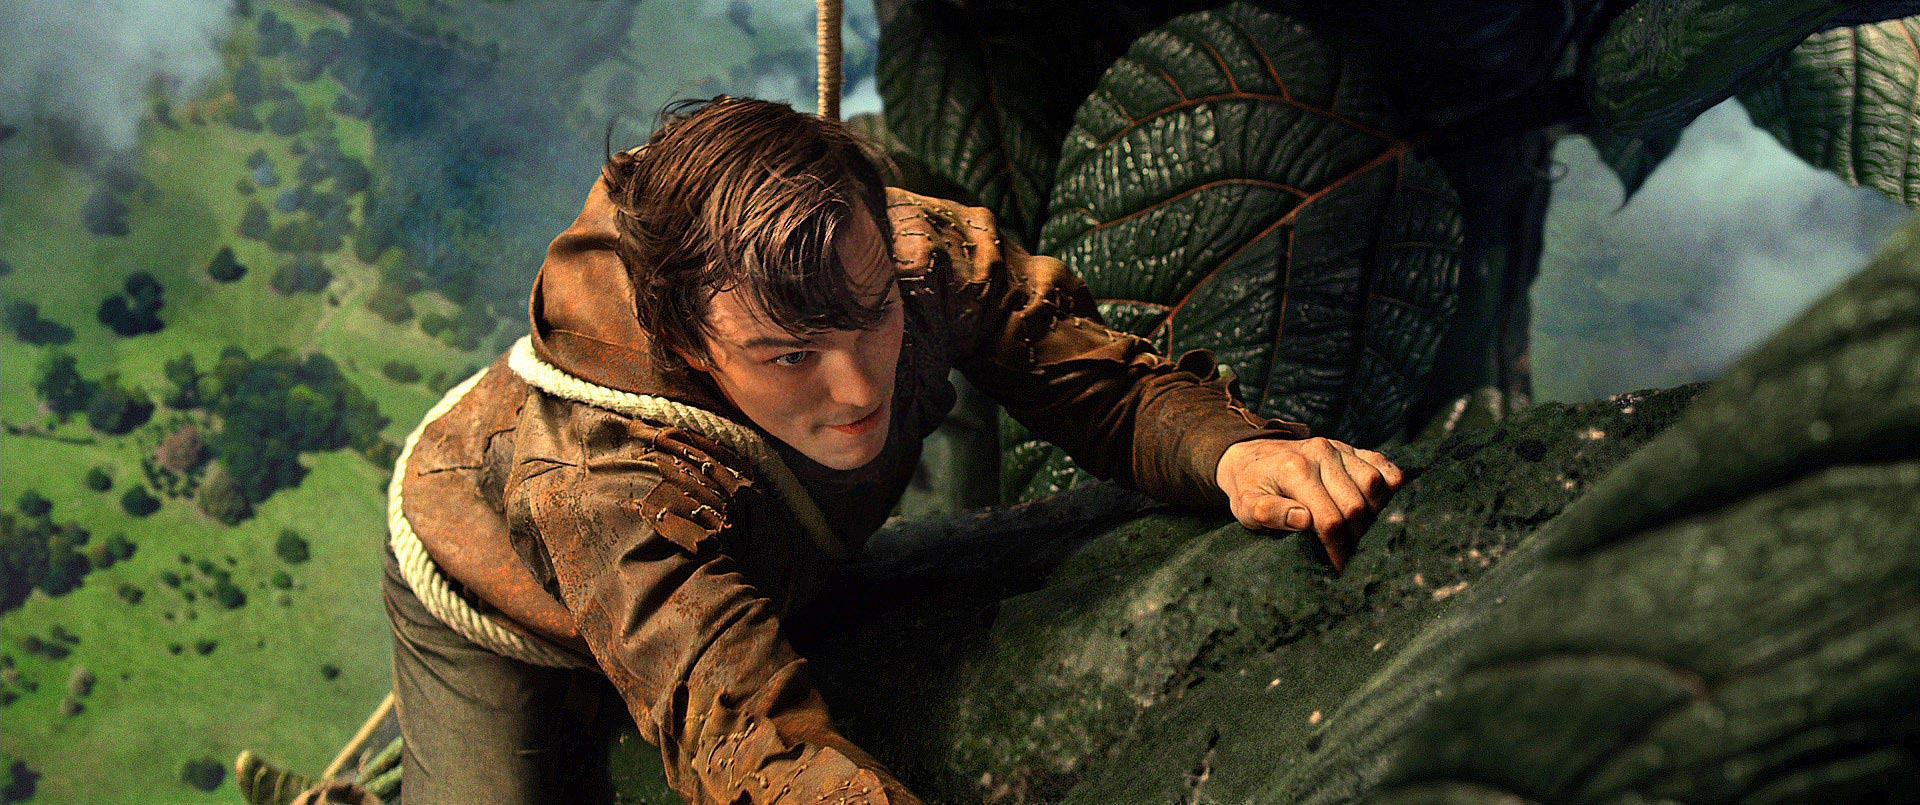 Jack The Giant Slayer Movie Review Jack The Giant Slayer Movie Review